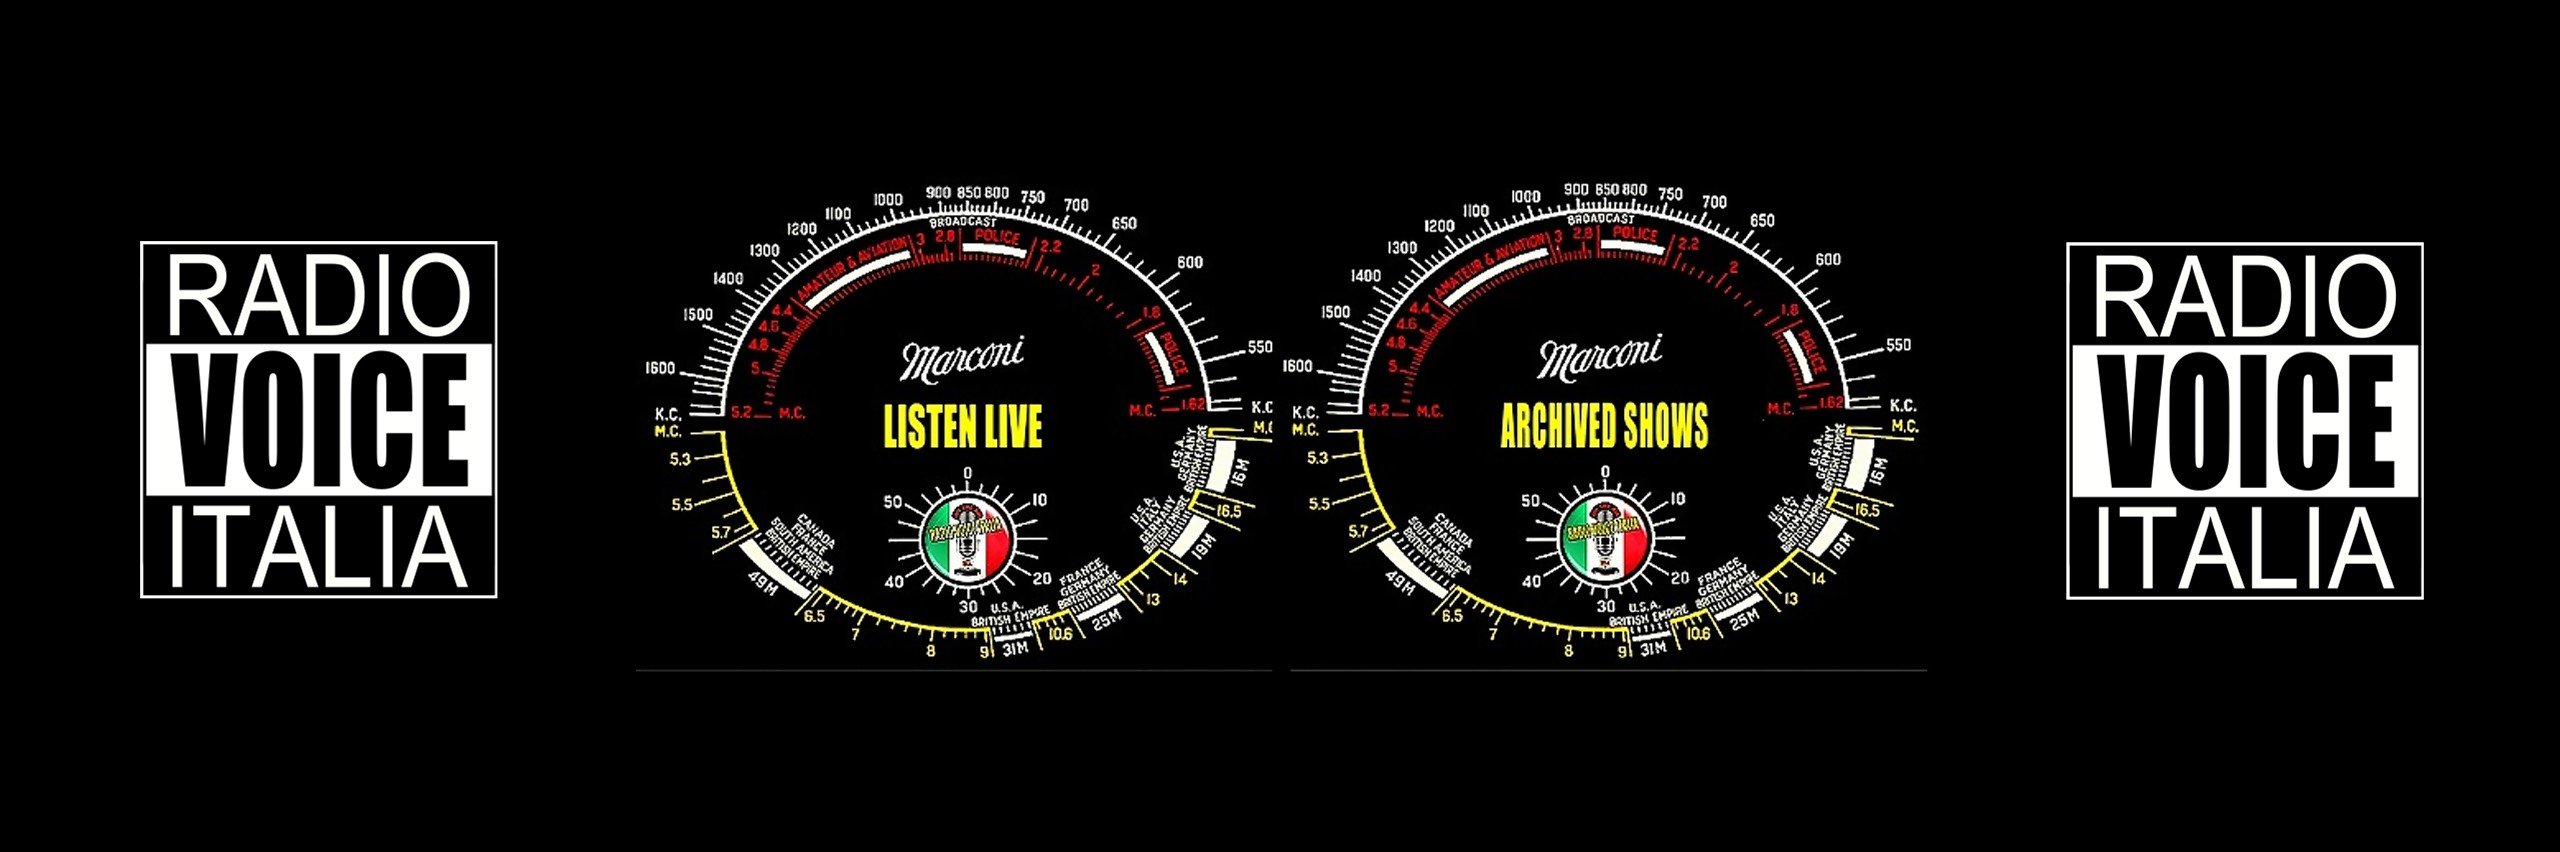 Radio Voice Italia USA